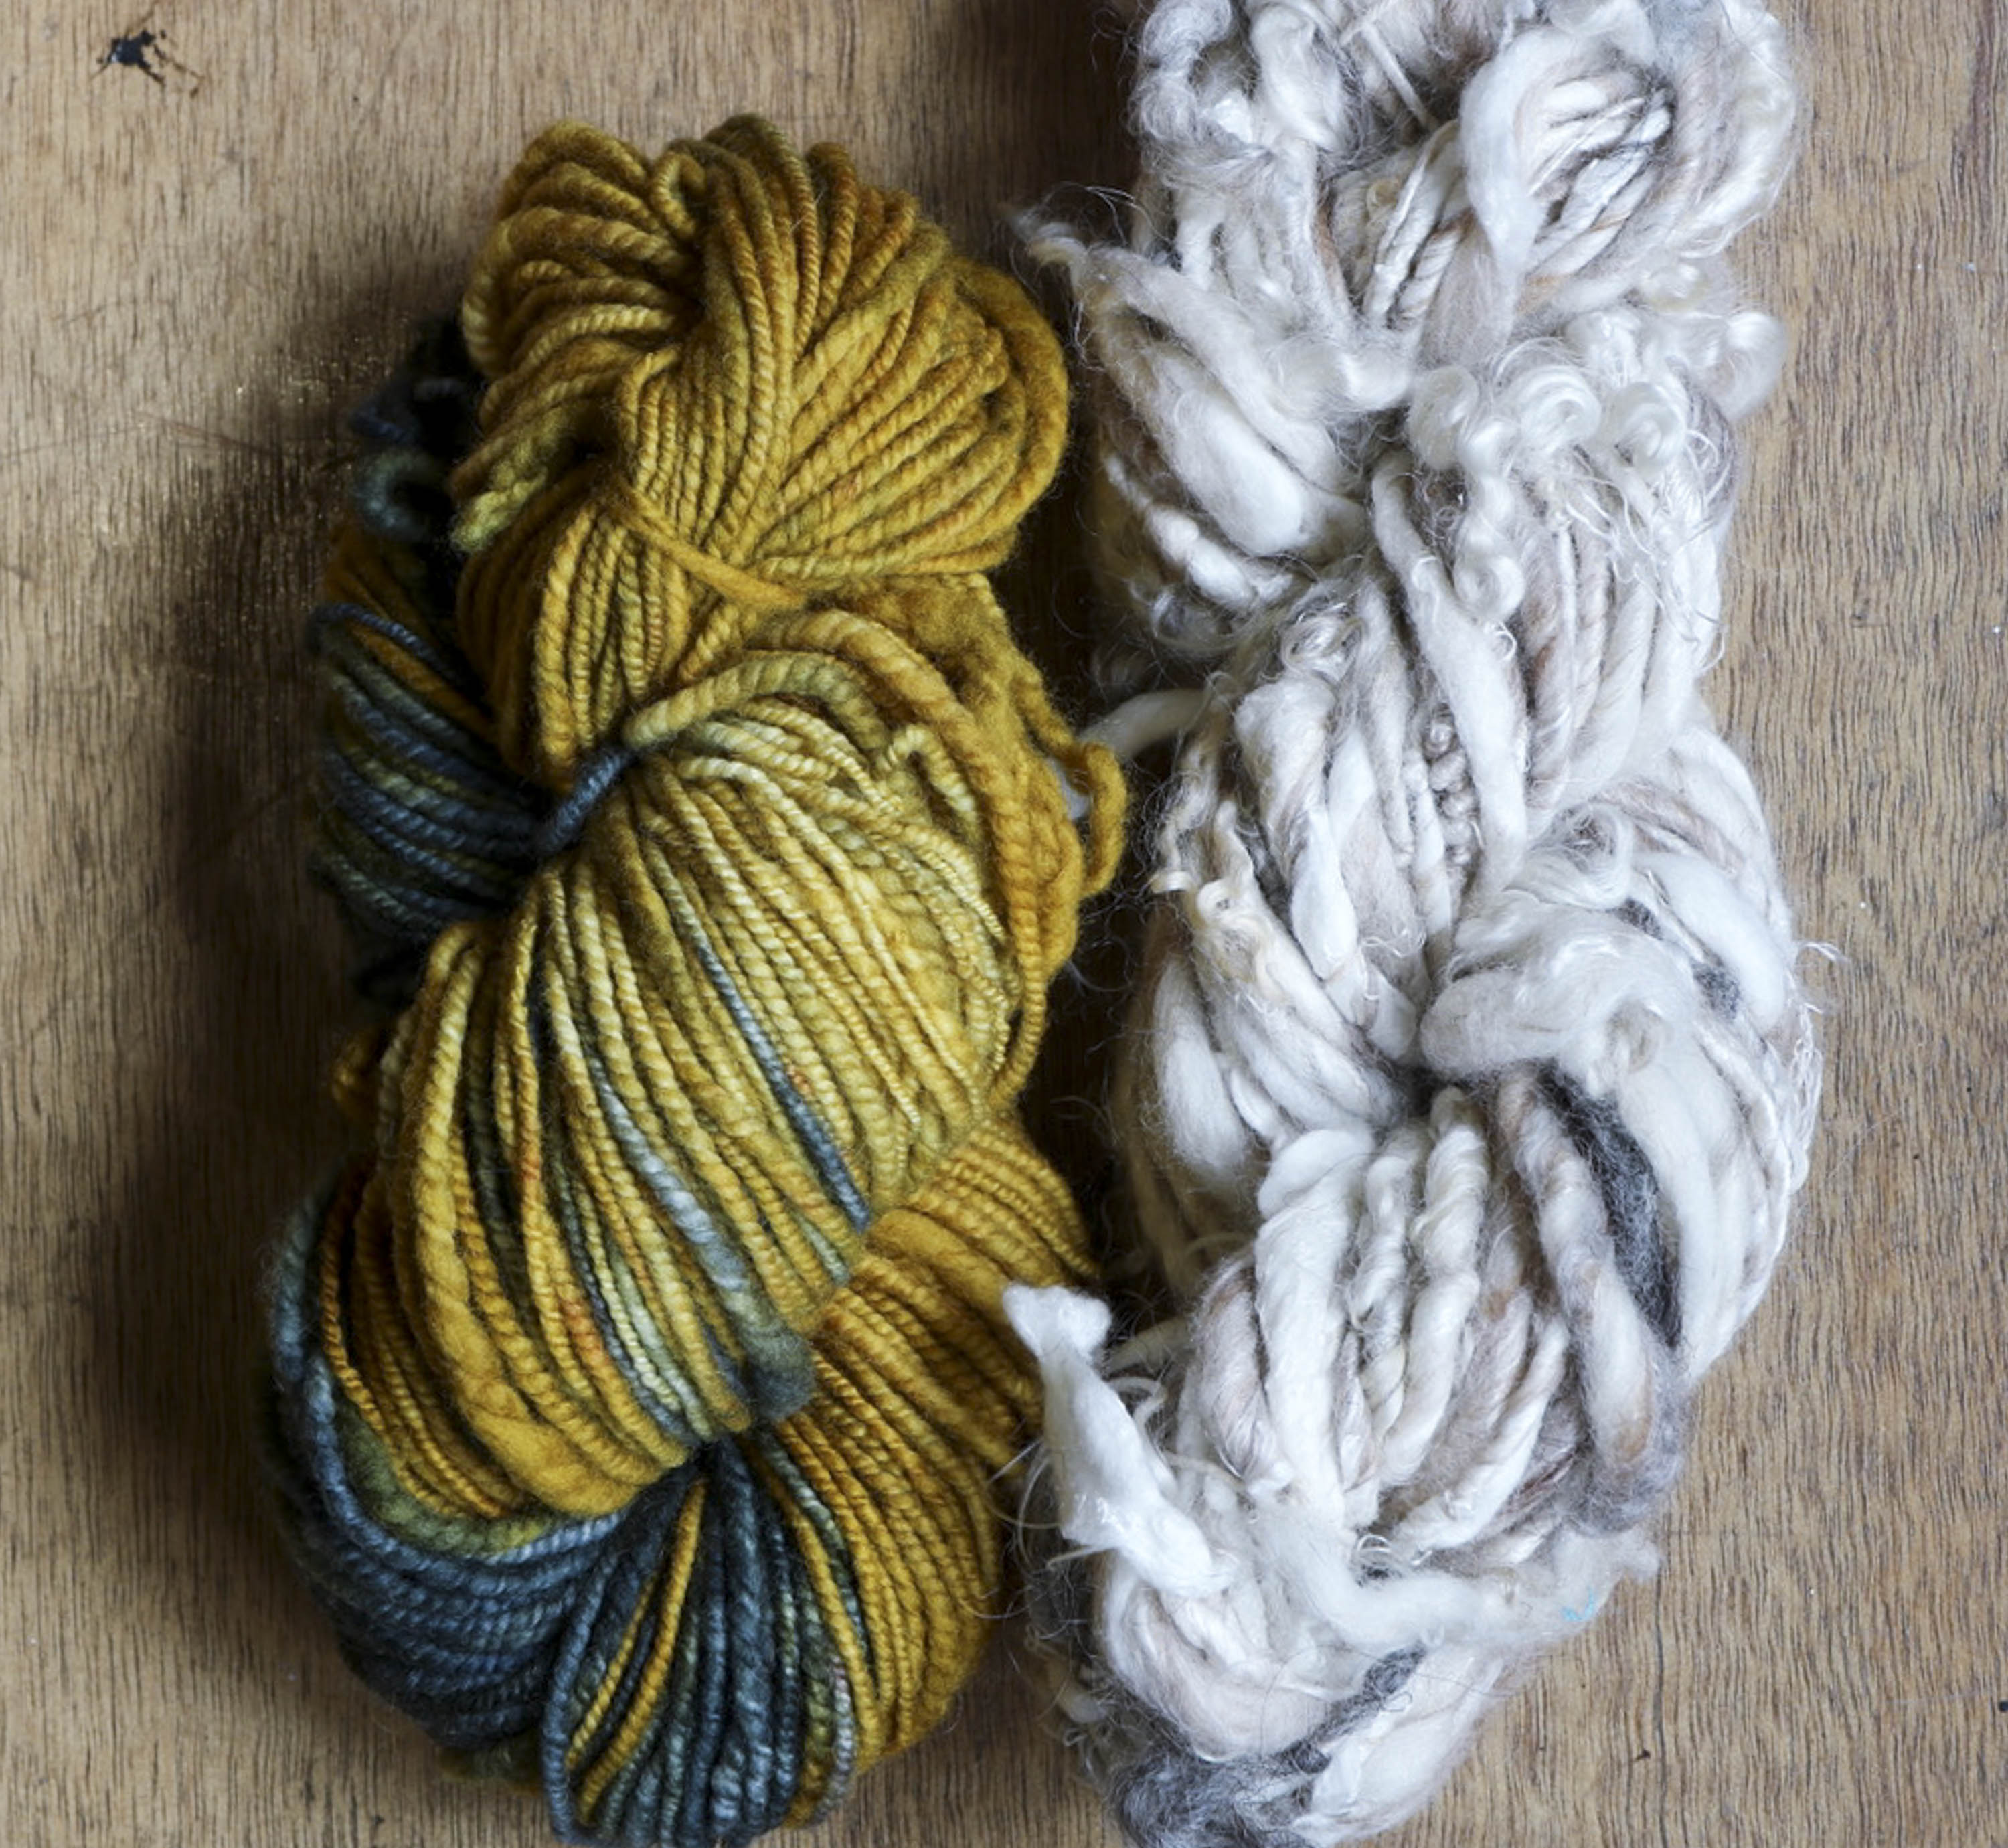 Two skeins of handspun art yarn. One in yellows and teals, the other in natural, pale greys